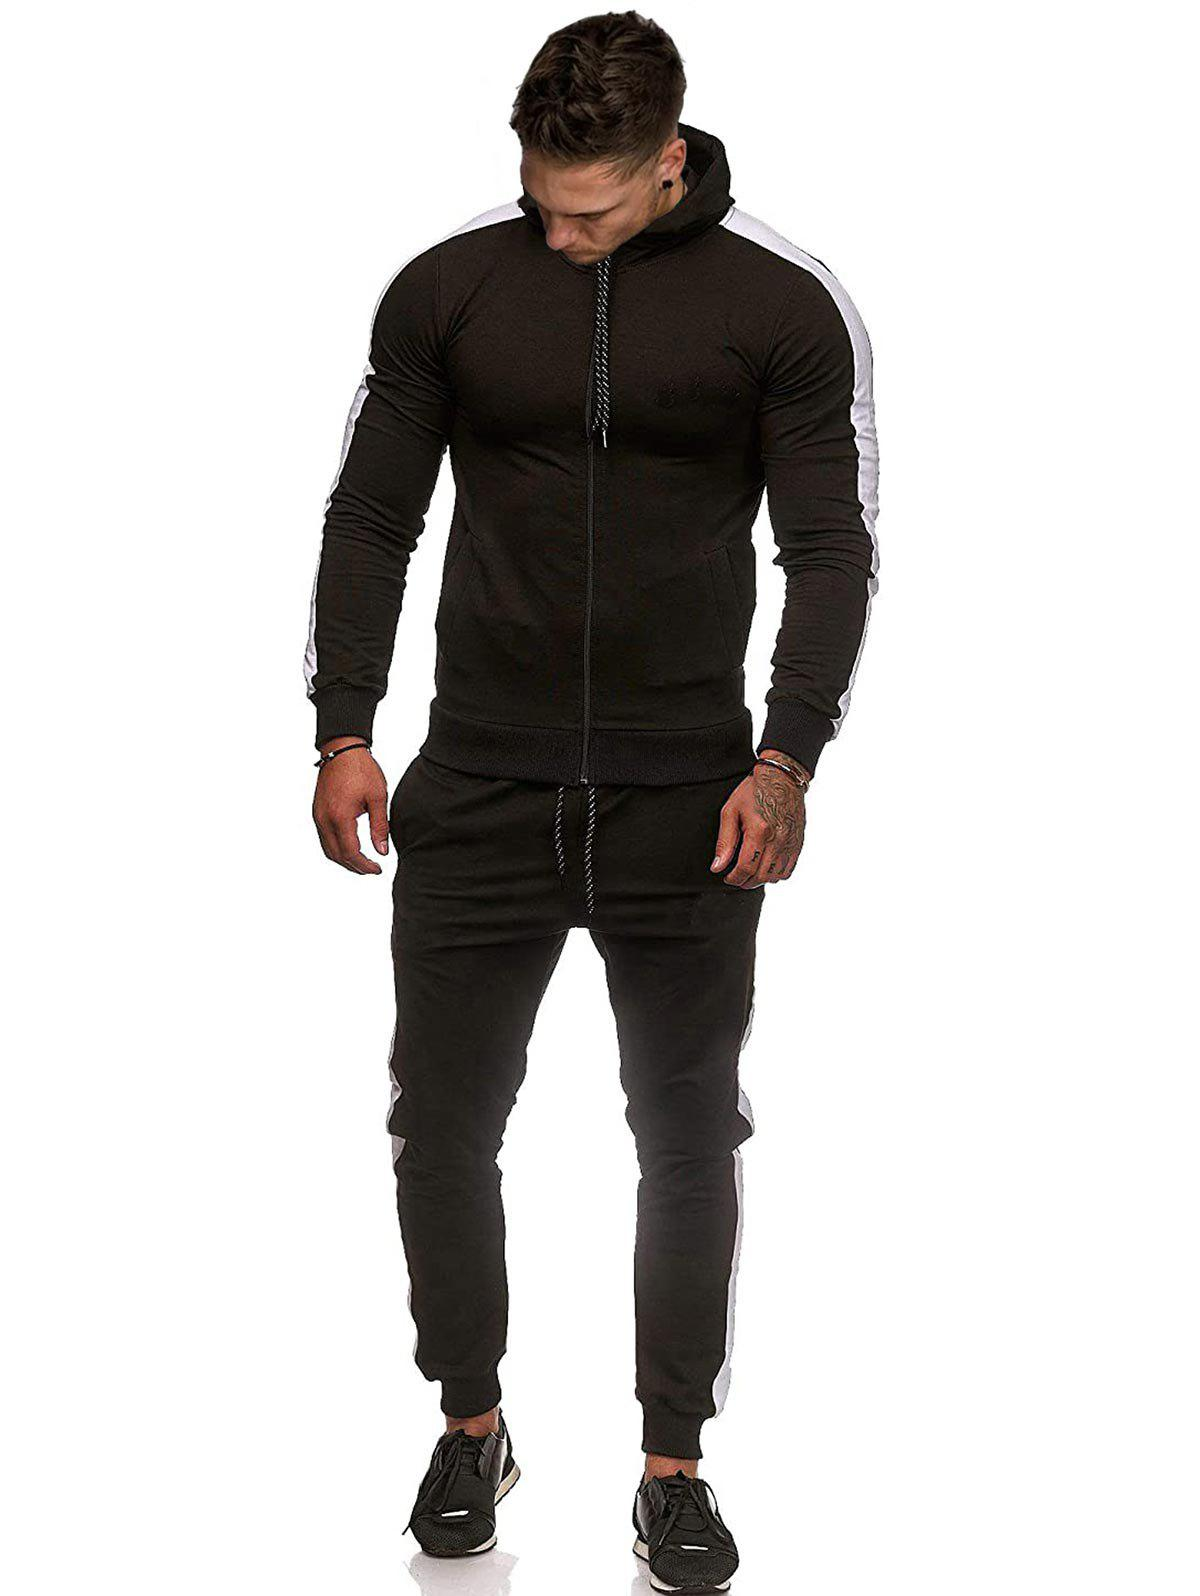 Fancy Contrast Tape Zip Up Hoodie and Pants Two Piece Set